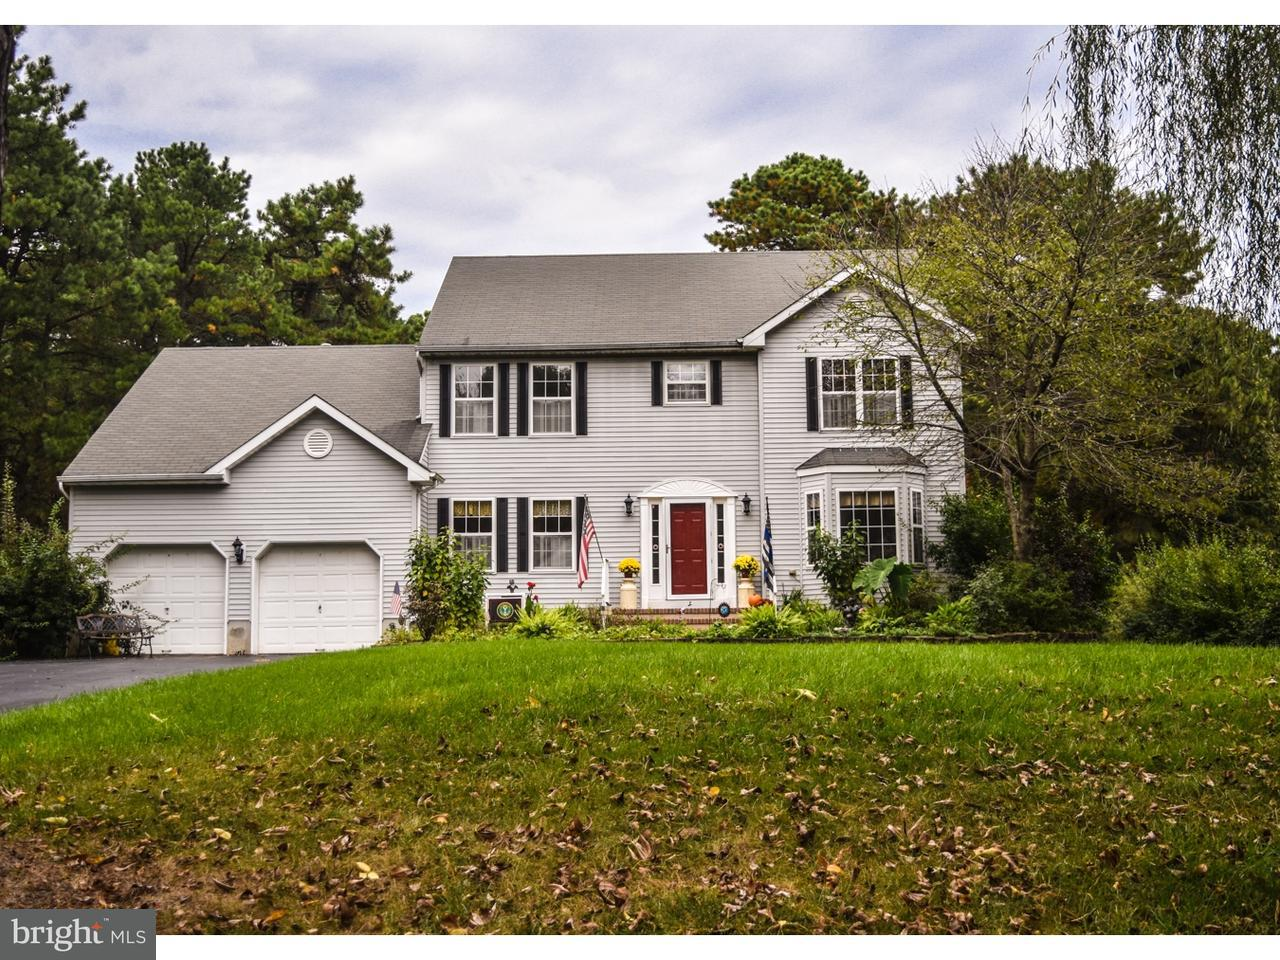 Single Family Home for Sale at 7 MARYBETH Court Jackson Township, New Jersey 08527 United States